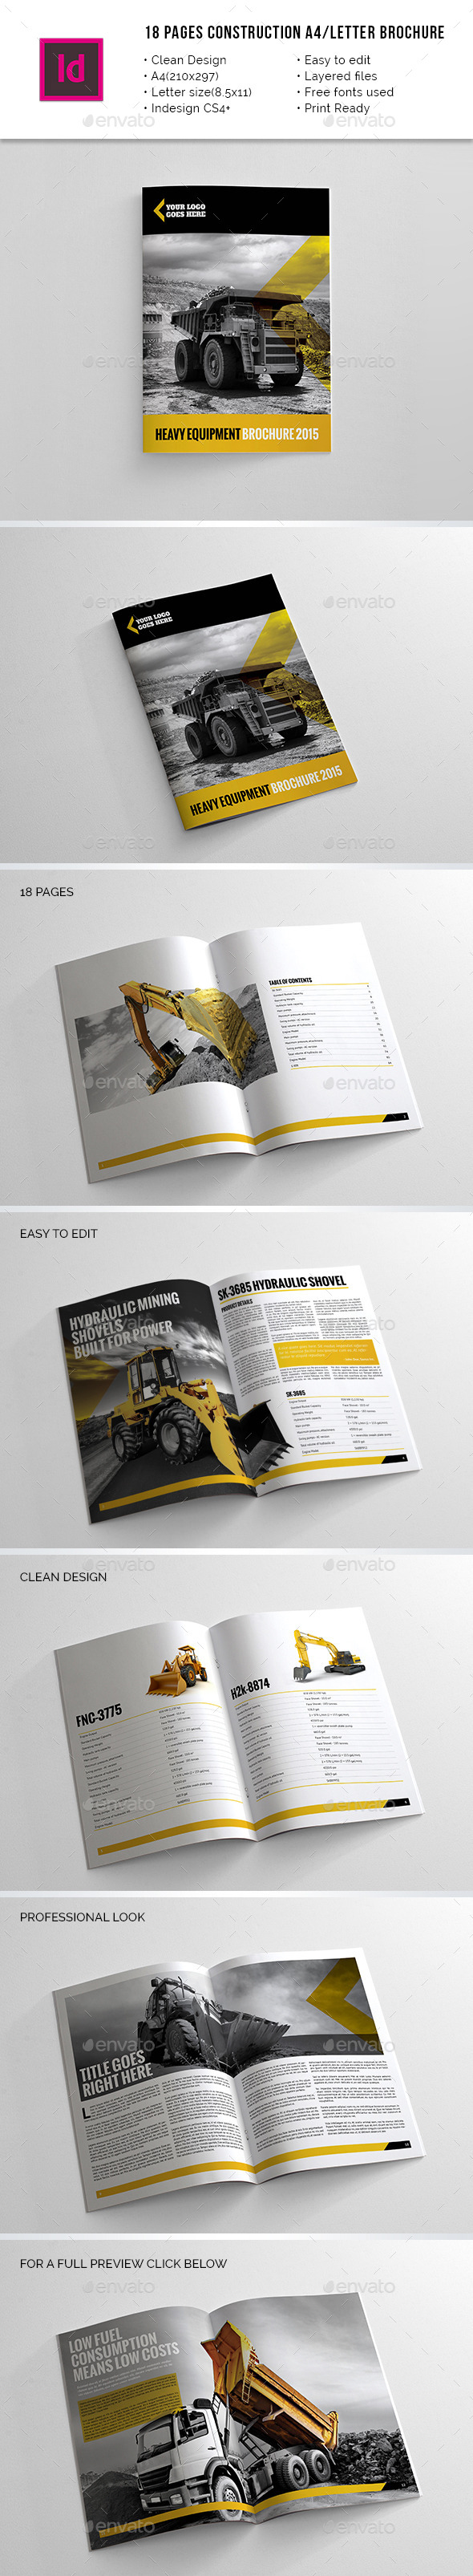 18 Pages Construction A4 / Letter Brochure - Brochures Print Templates